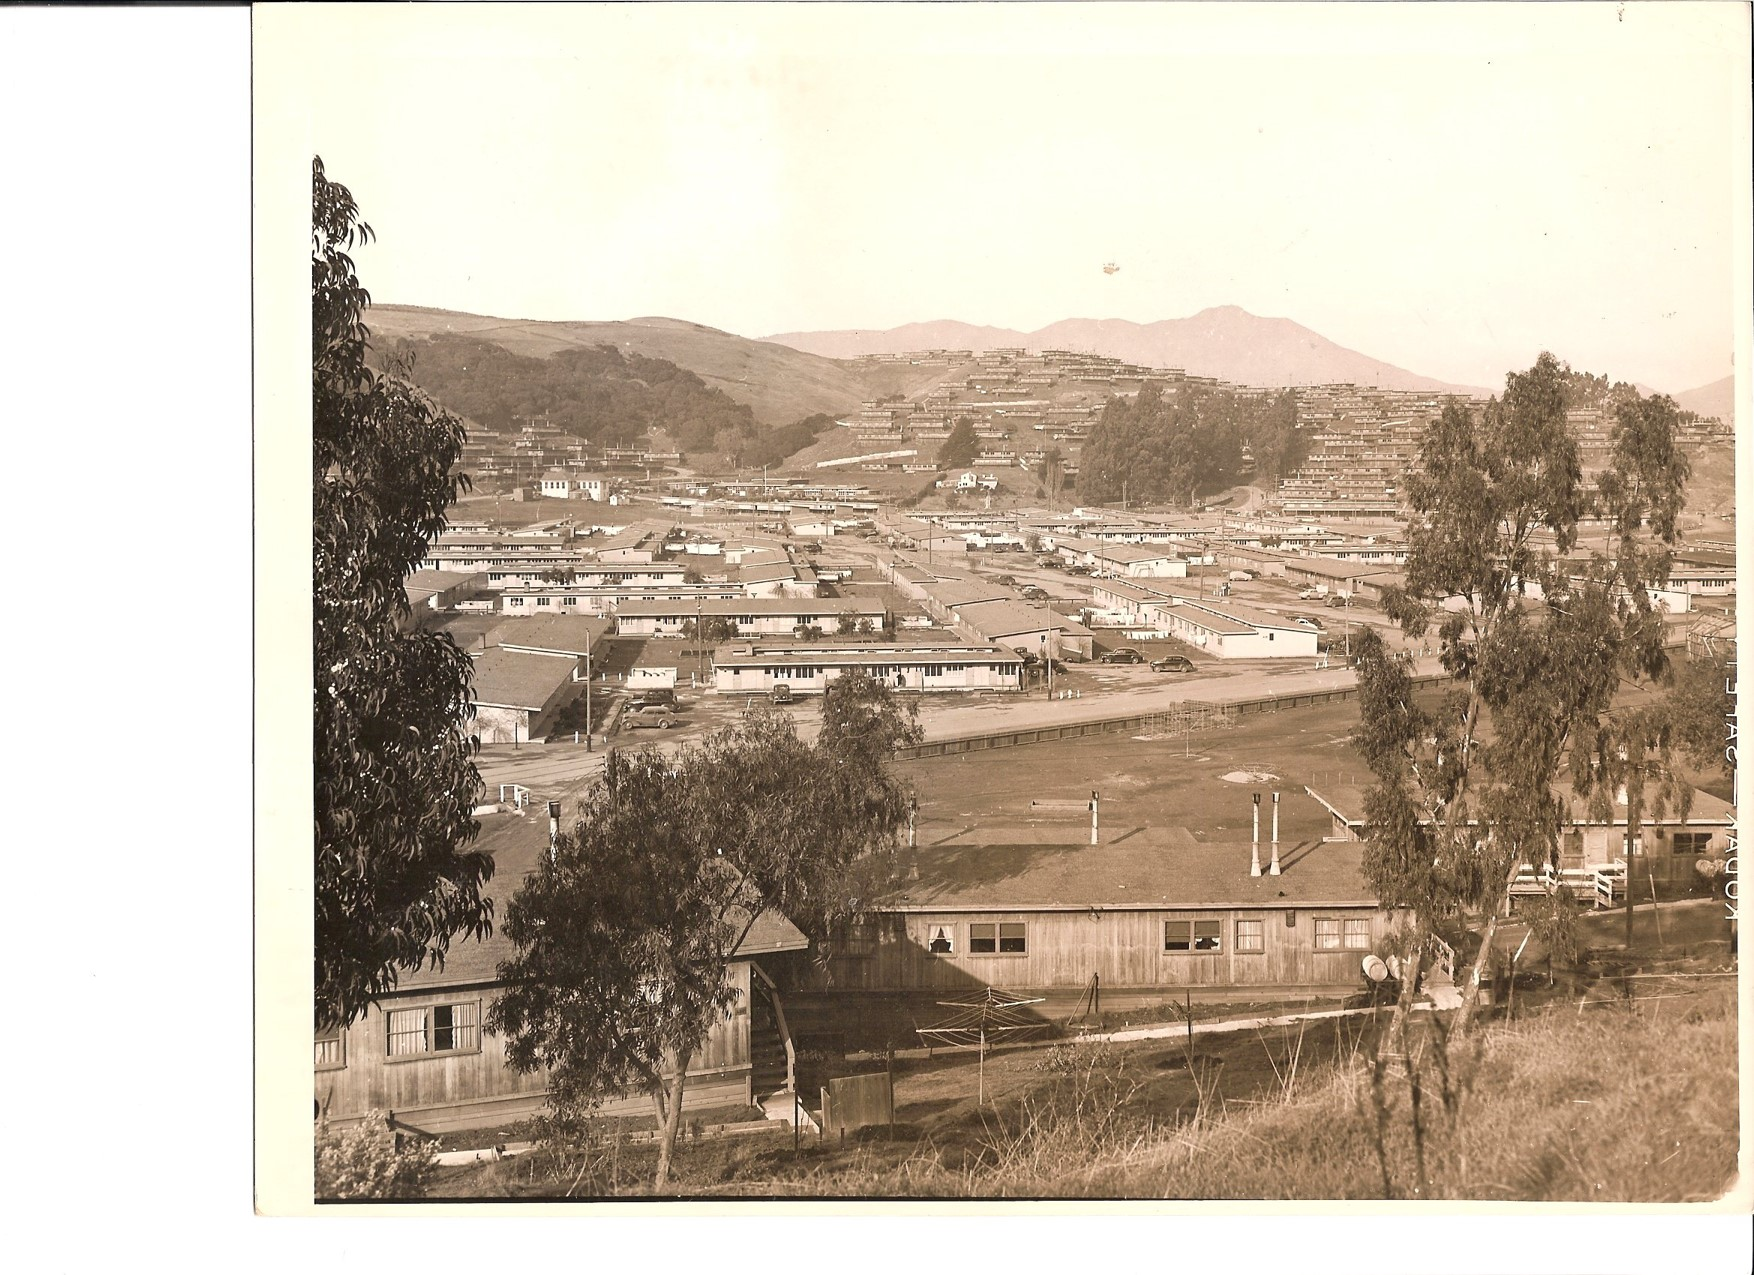 By the end of 1943, Marin City's population was nearly 6,000.  Photo courtesy of Sausalito Historical Society